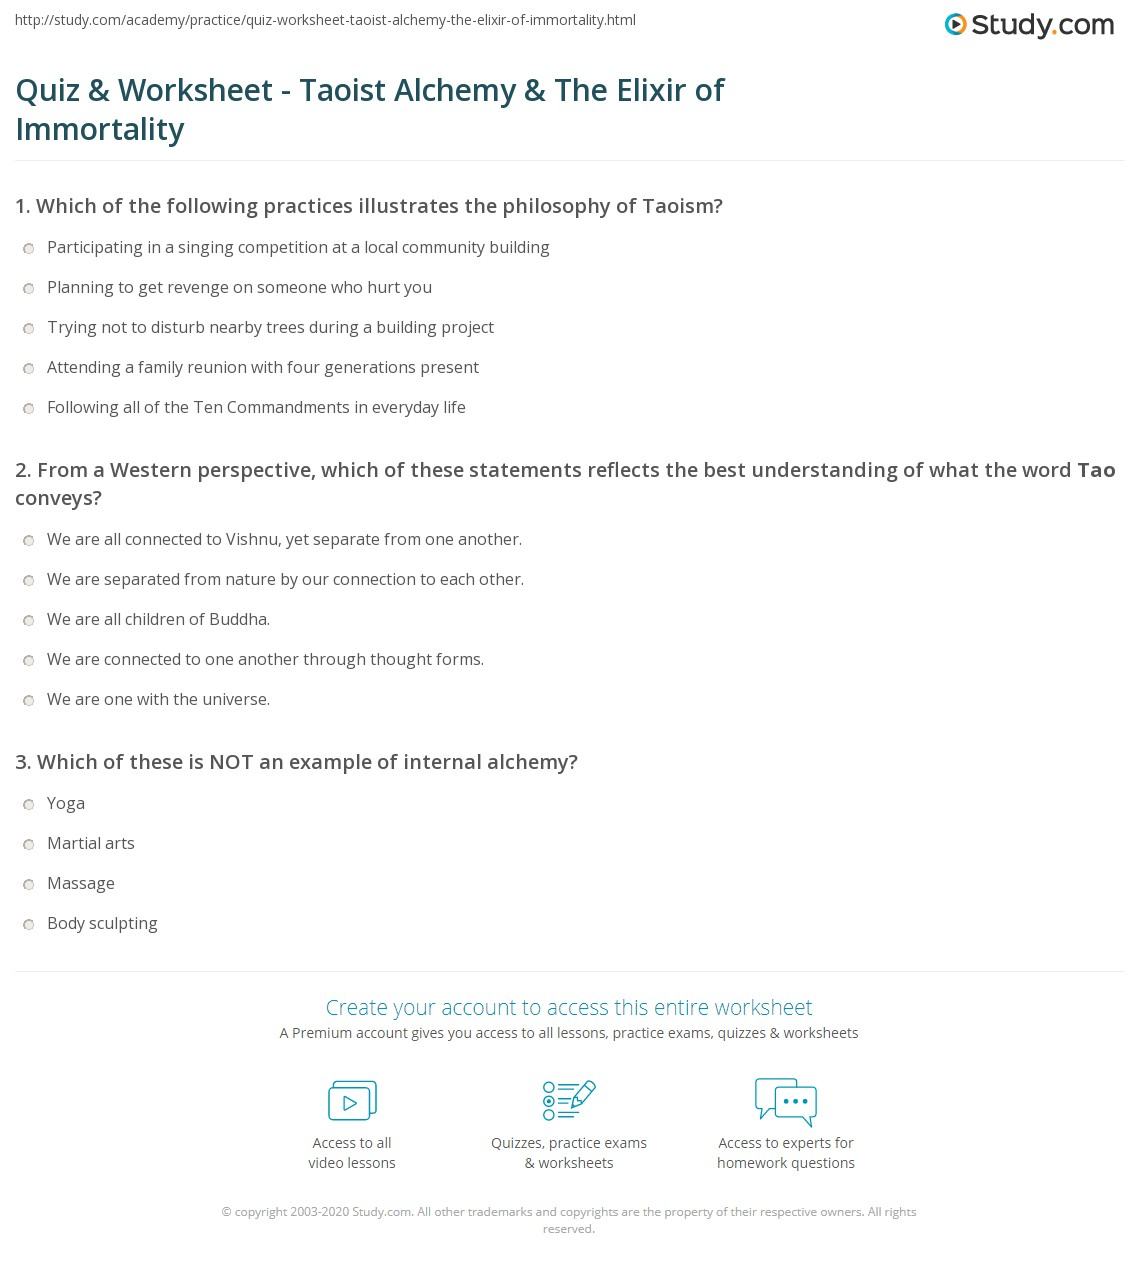 Quiz & Worksheet - Taoist Alchemy & The Elixir of Immortality